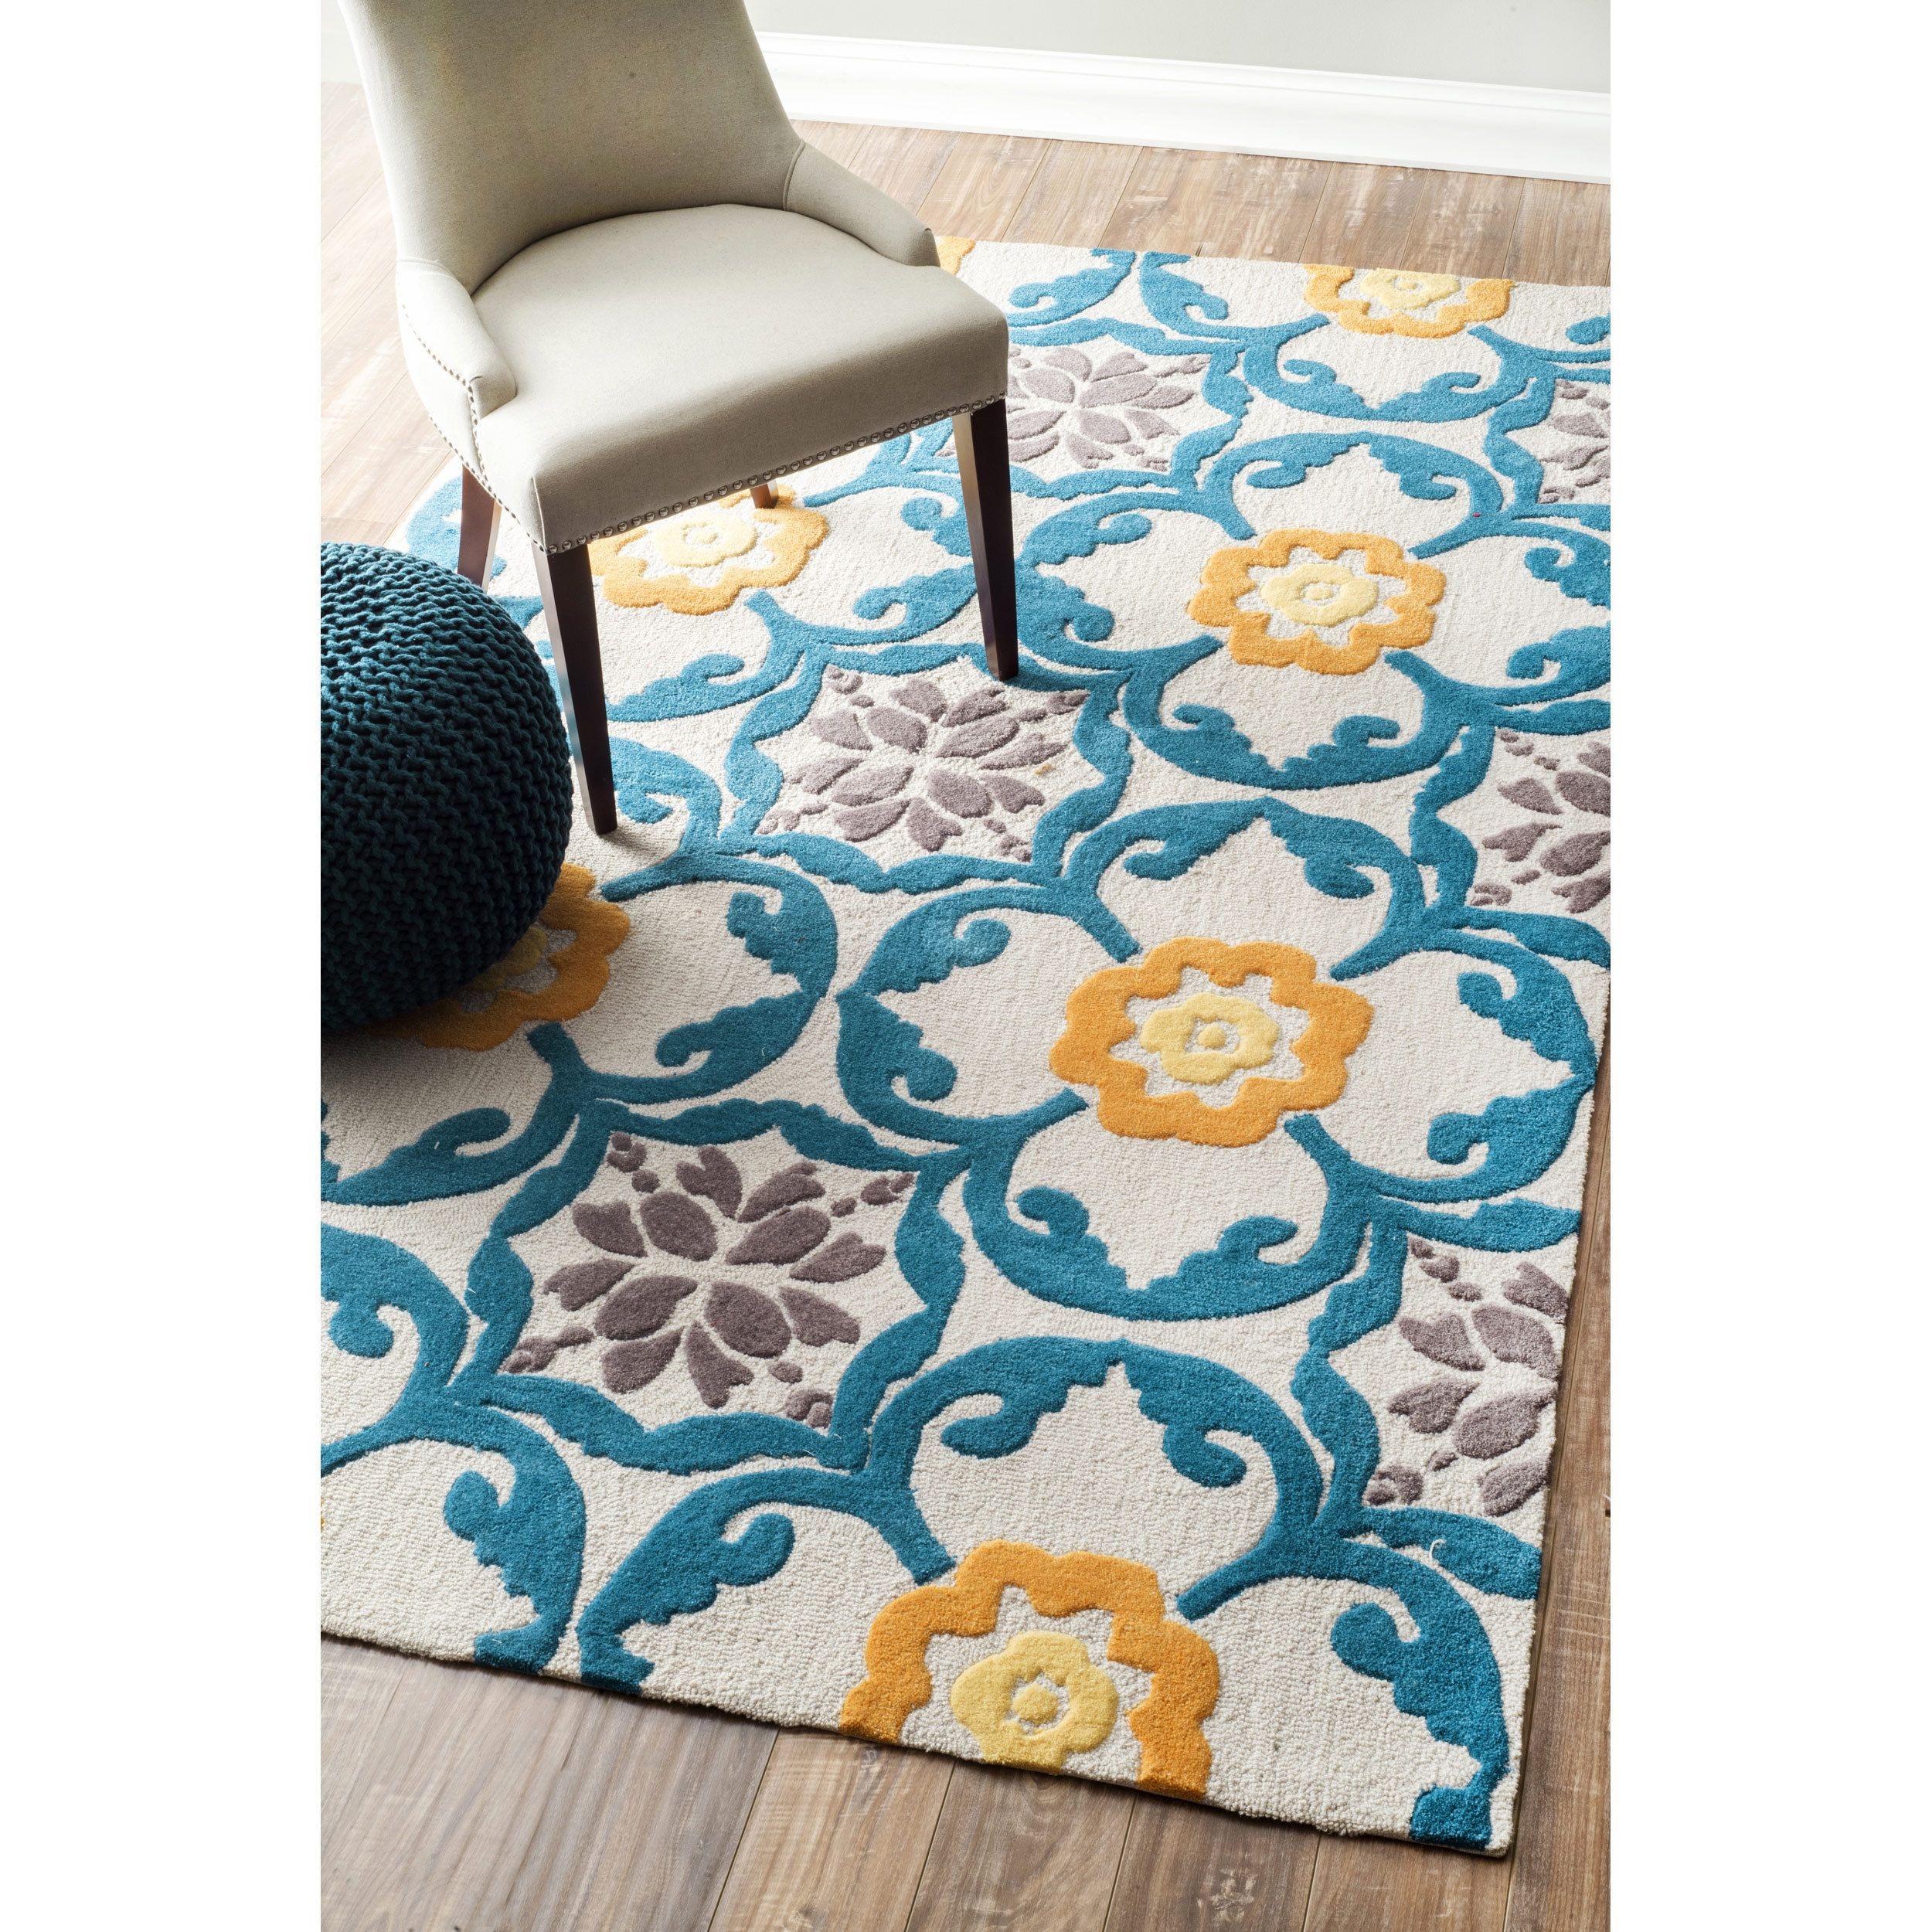 Quality Meets Value In This Beautiful Modern Area Rug. Handmade With  Polyester To Prevent Shedding